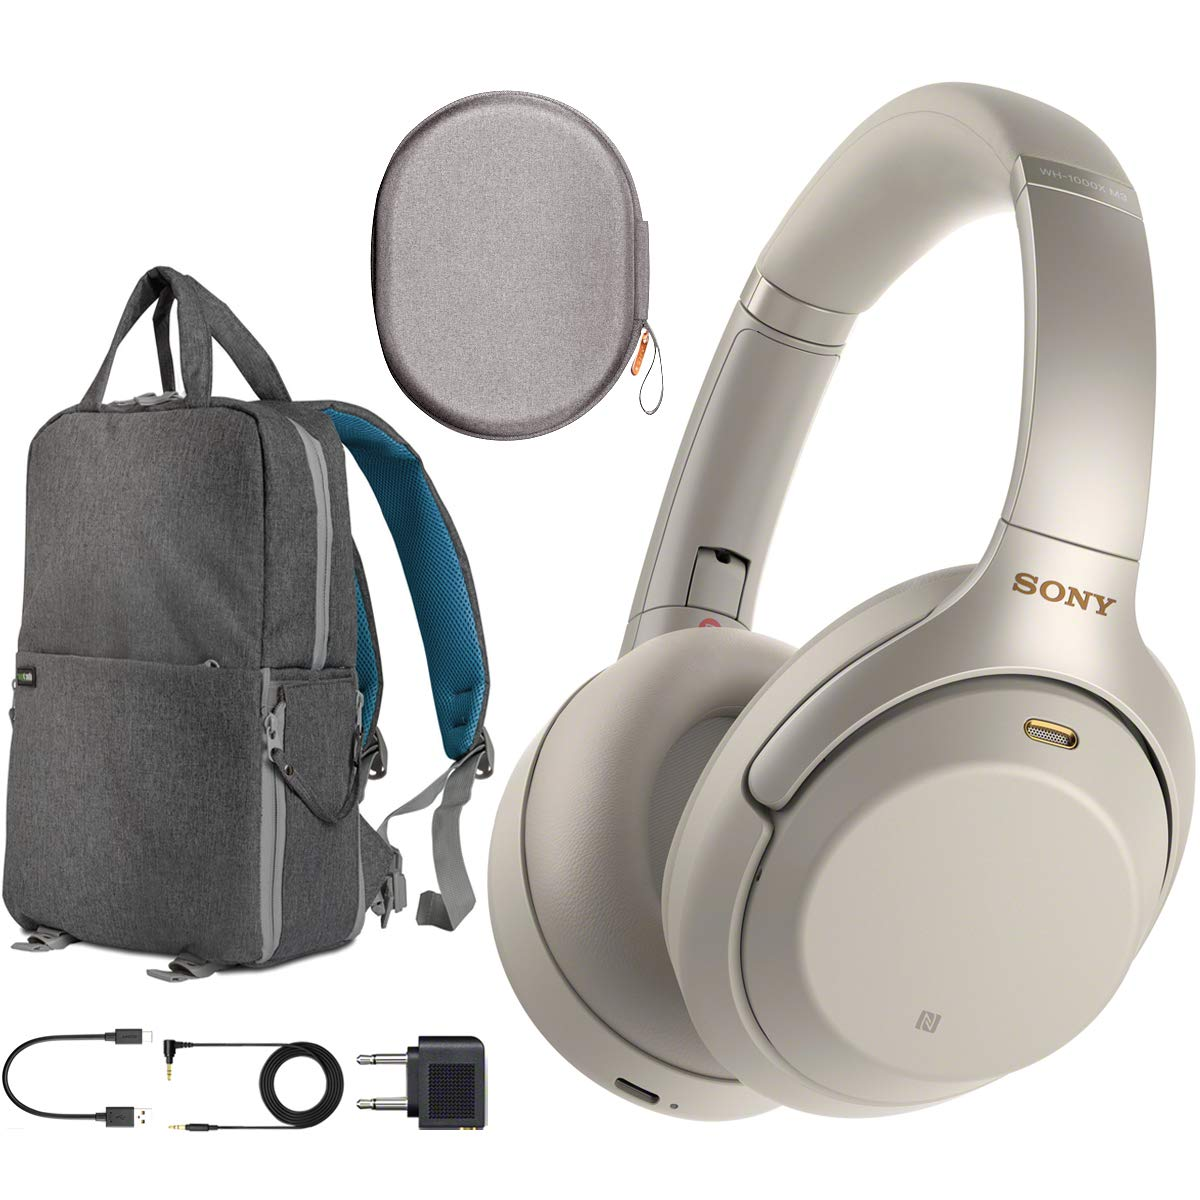 Sony WH1000XM3 Premium Noise Cancelling Wireless Bluetooth Headphones with Built in Microphone WH-1000XM3/S Silver Commuter's Bundle with Deco Gear Travel Backpack with Gadget Compartment & USB Port